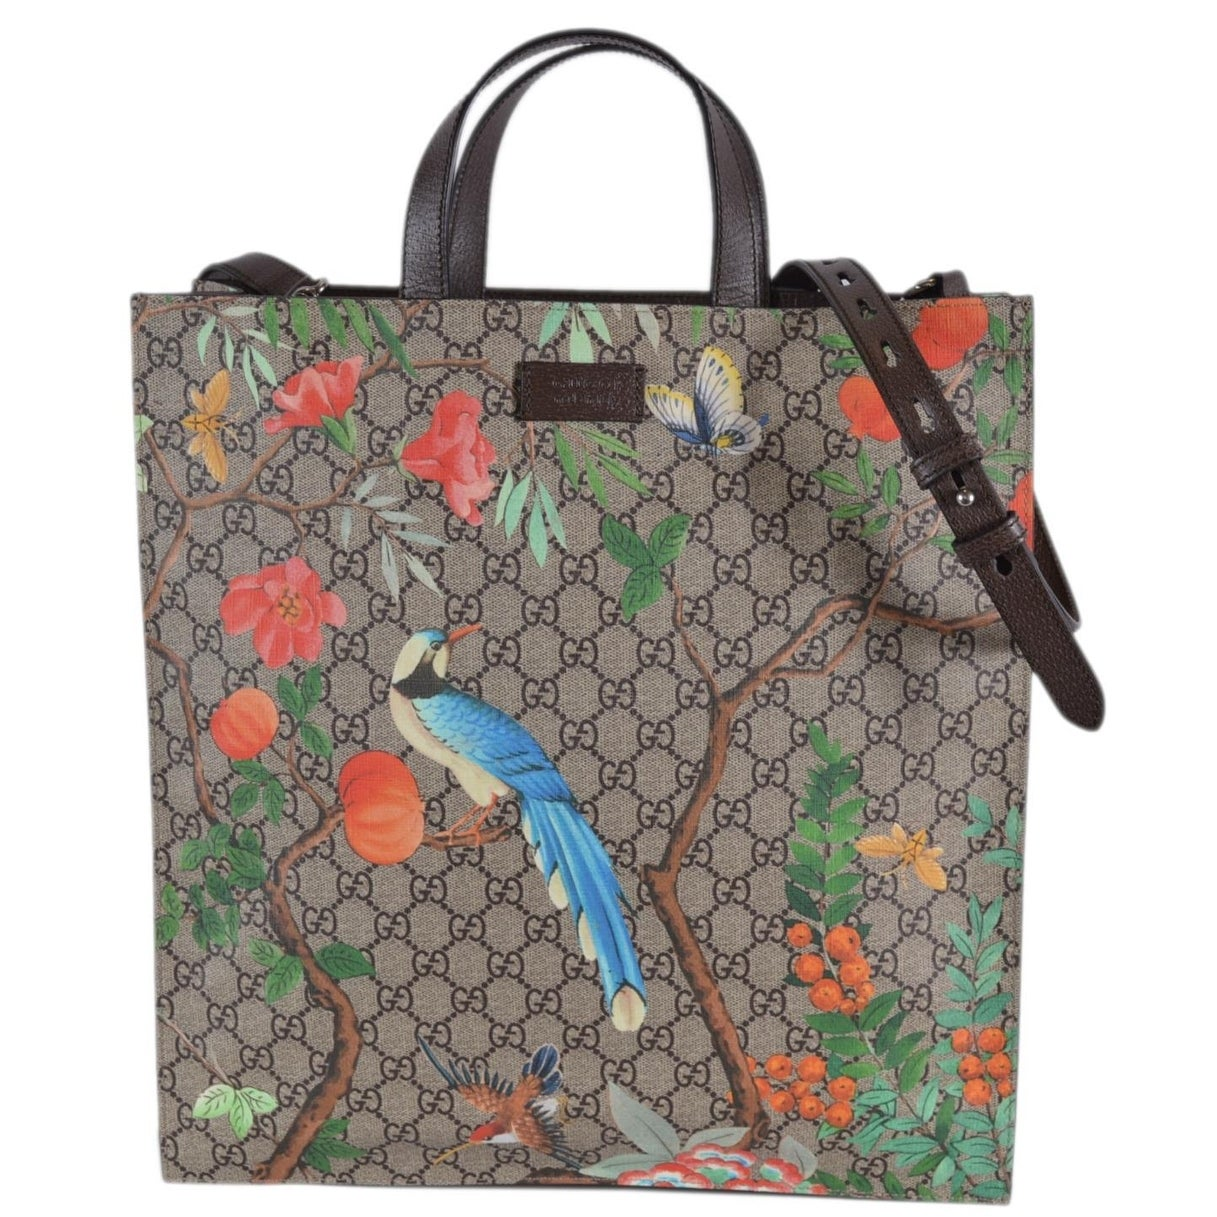 9f2cbd39cab Shop Gucci Women s 450950 GG Supreme Blooms Birds Floral Crossbody Purse  Tote - Beige Brown - Free Shipping Today - Overstock - 27545157